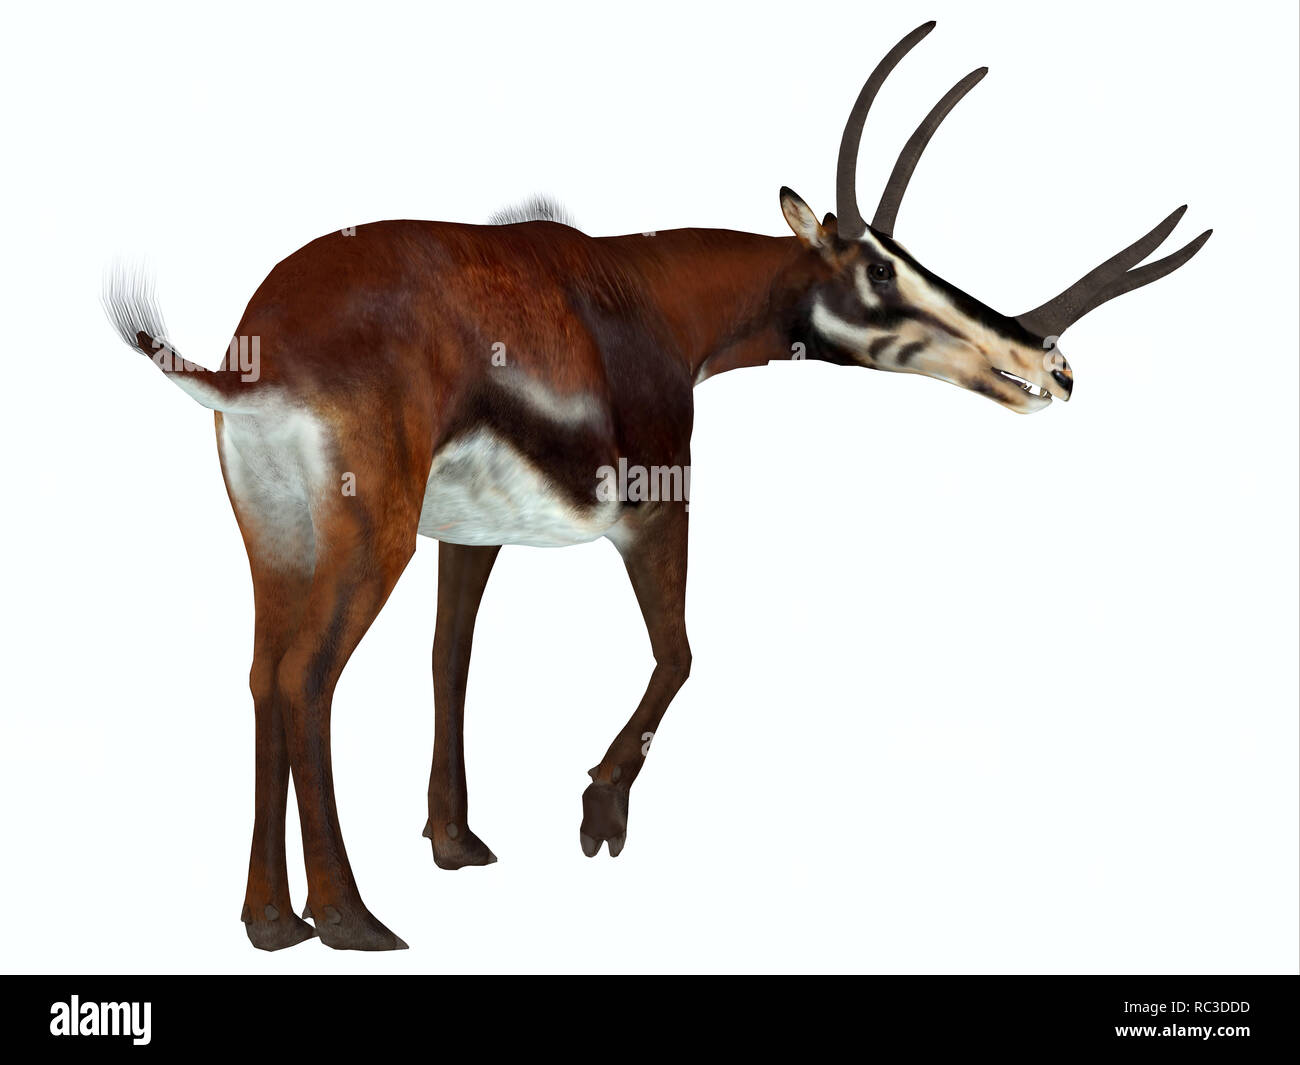 Kyptoceras Mammal - Kyptoceras was an antelope mammal that lived on the plains of North America during the Miocene Period. - Stock Image